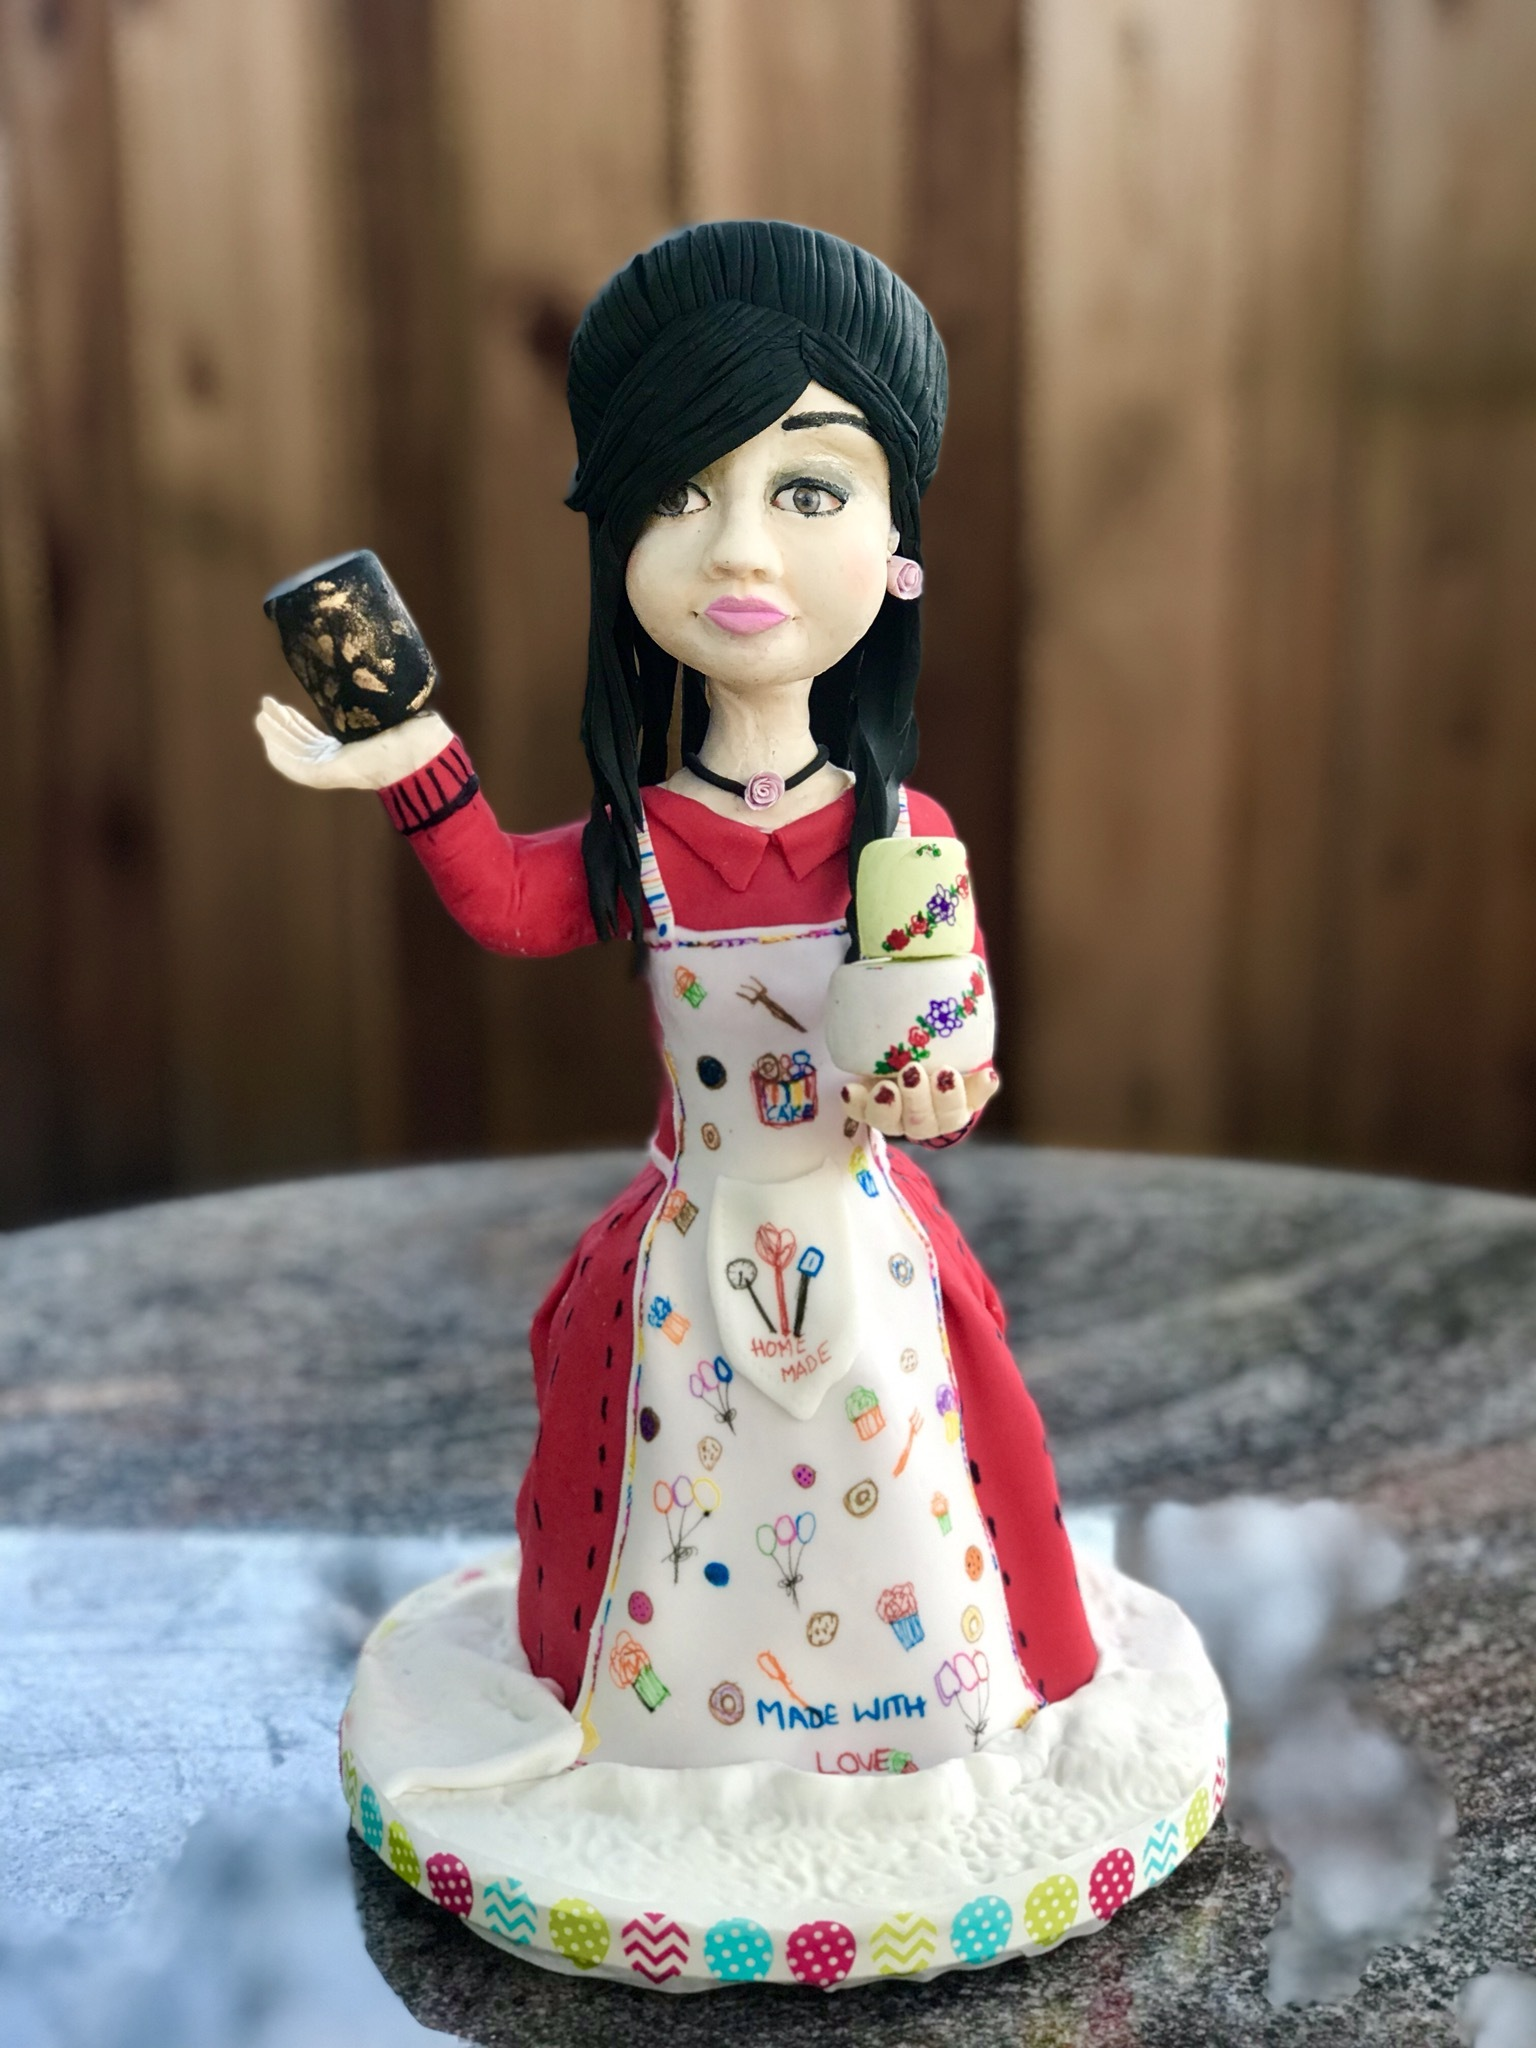 Modeling chocolate baker girl figurine